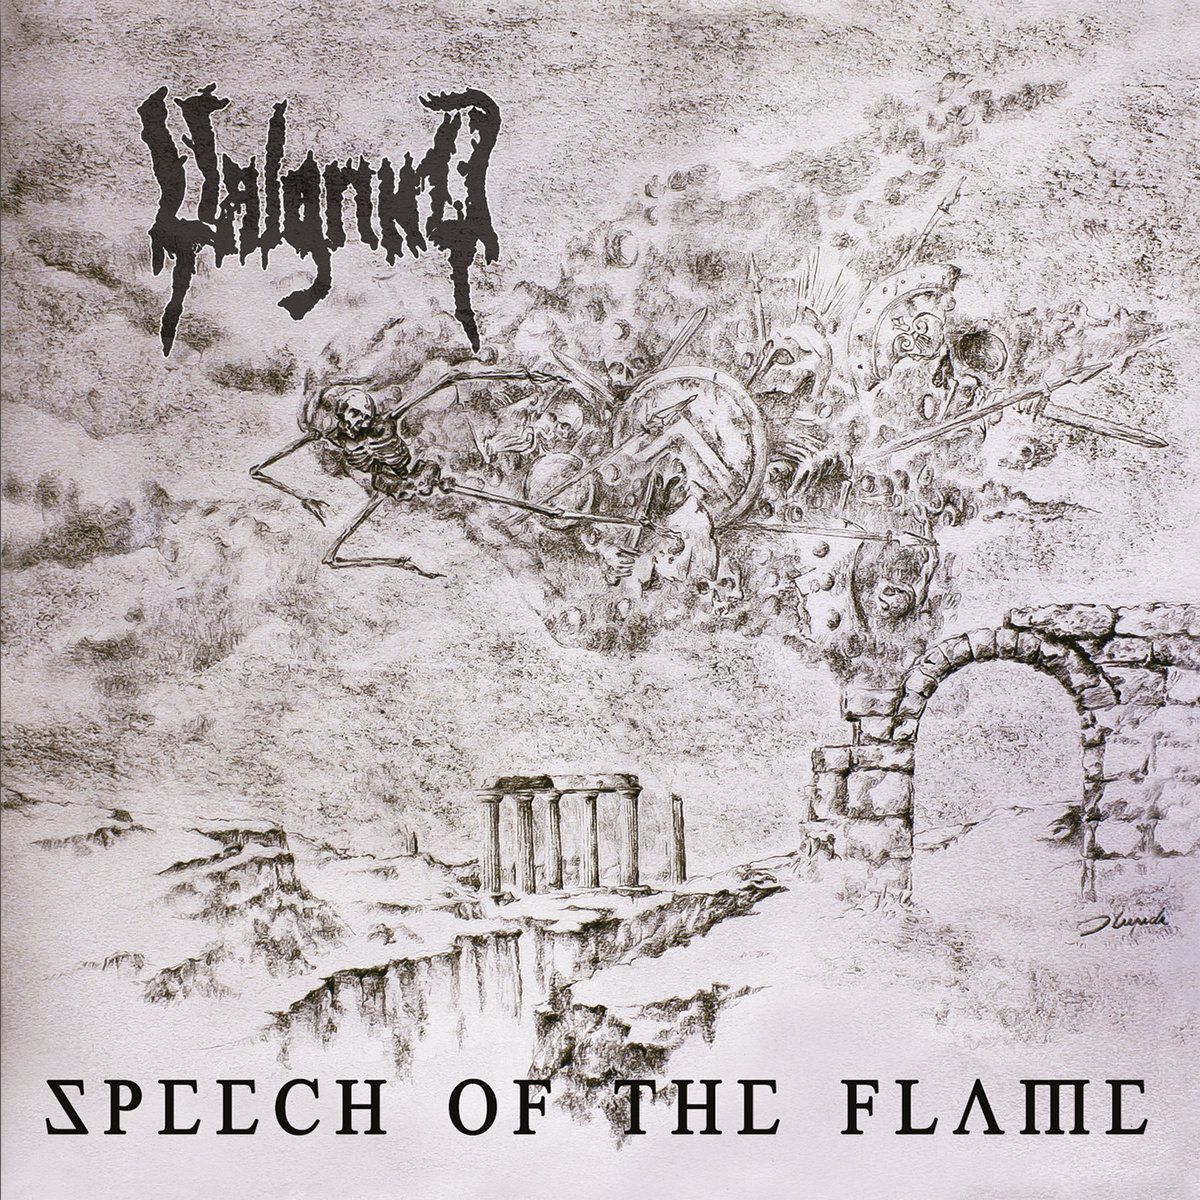 Speech of the Flame | VALGRIND